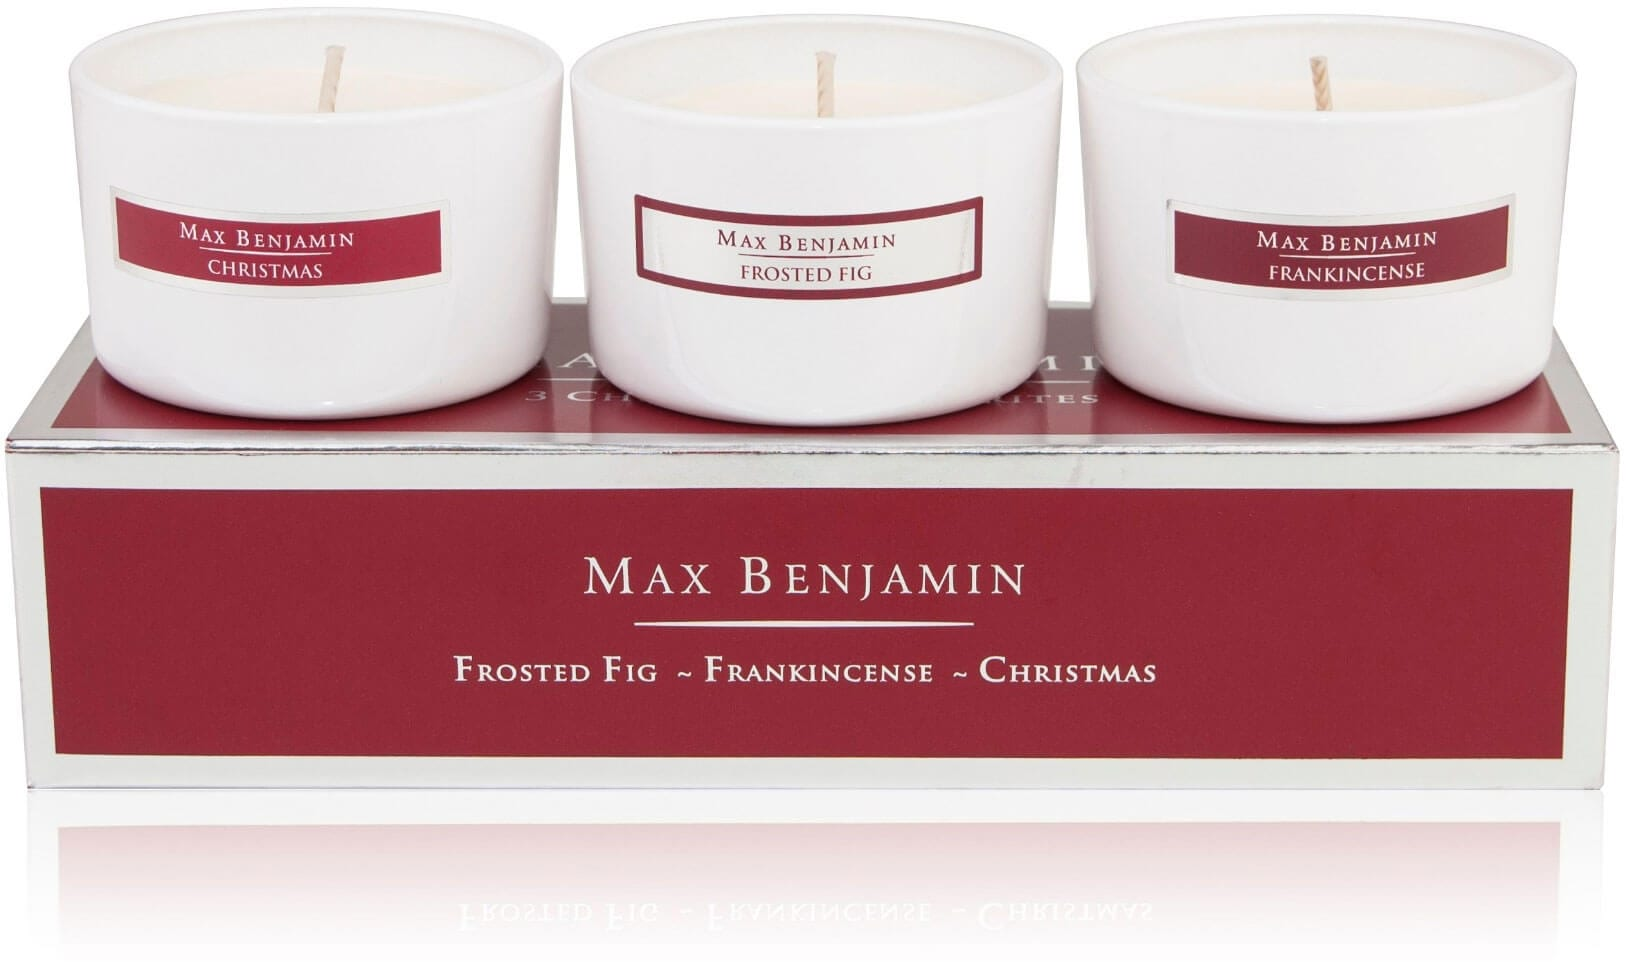 max-benjamin-christmas-candles-frosted-fig-frankincense-christmas-unlit.jpg